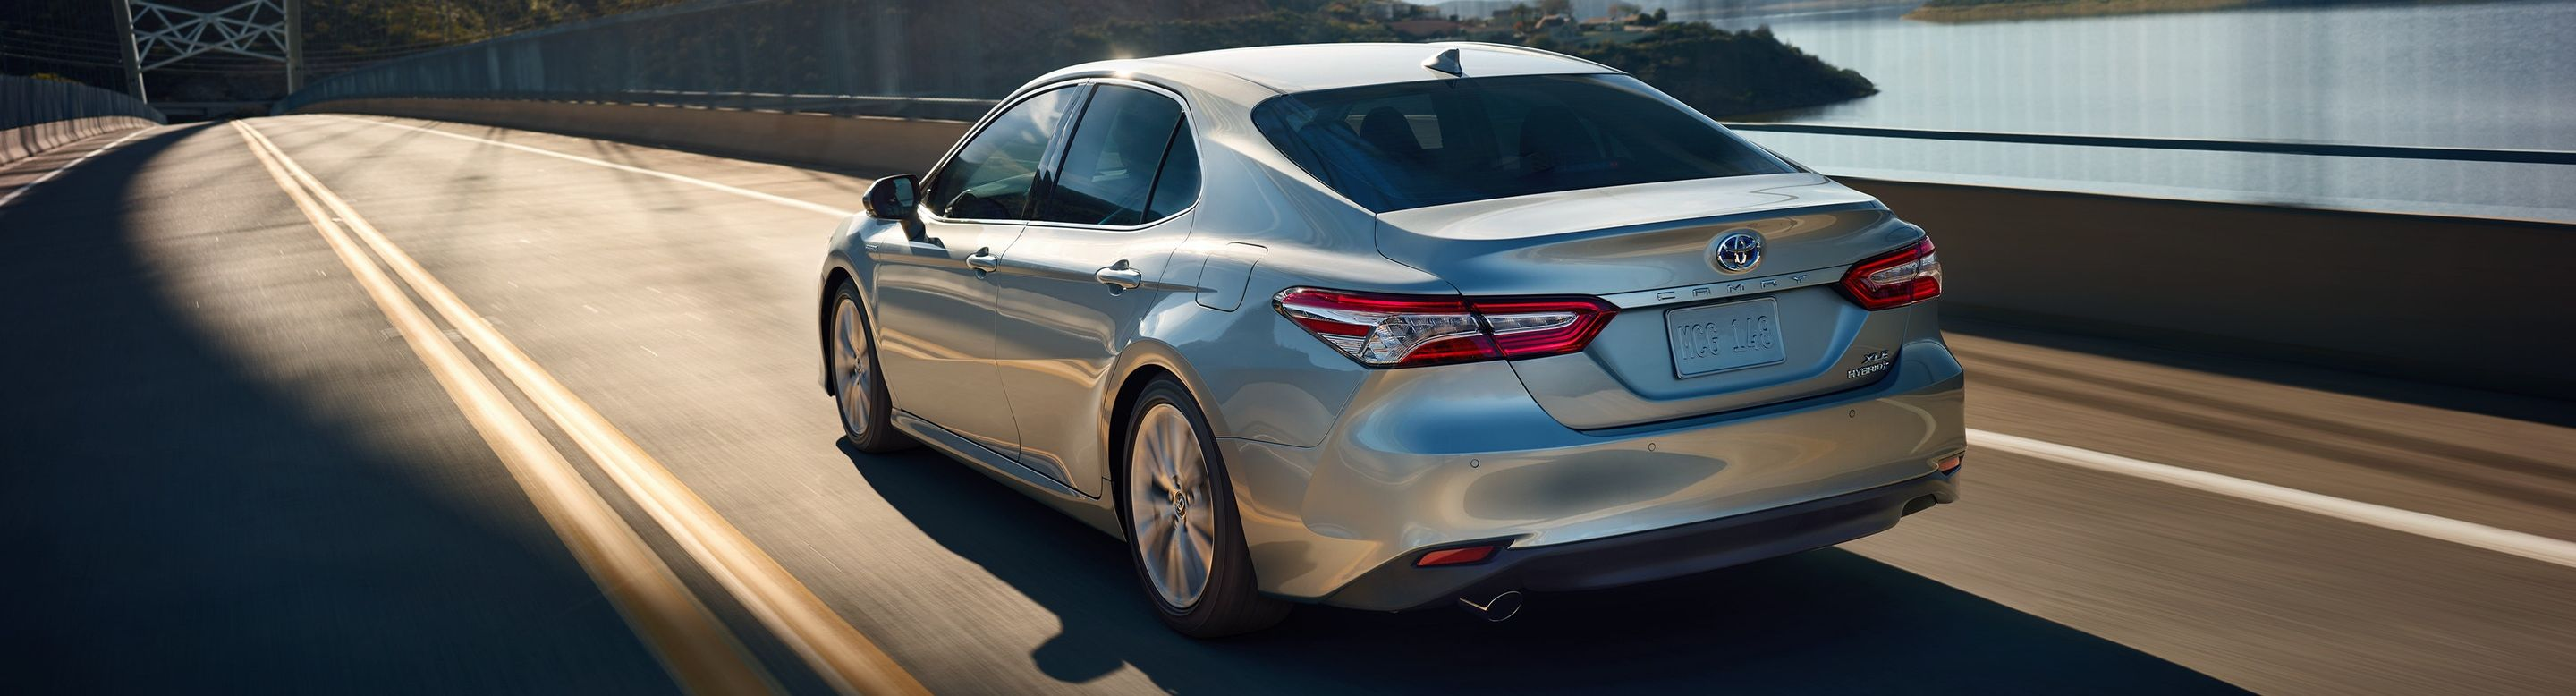 2019 Toyota Camry for Sale near Belton, MO